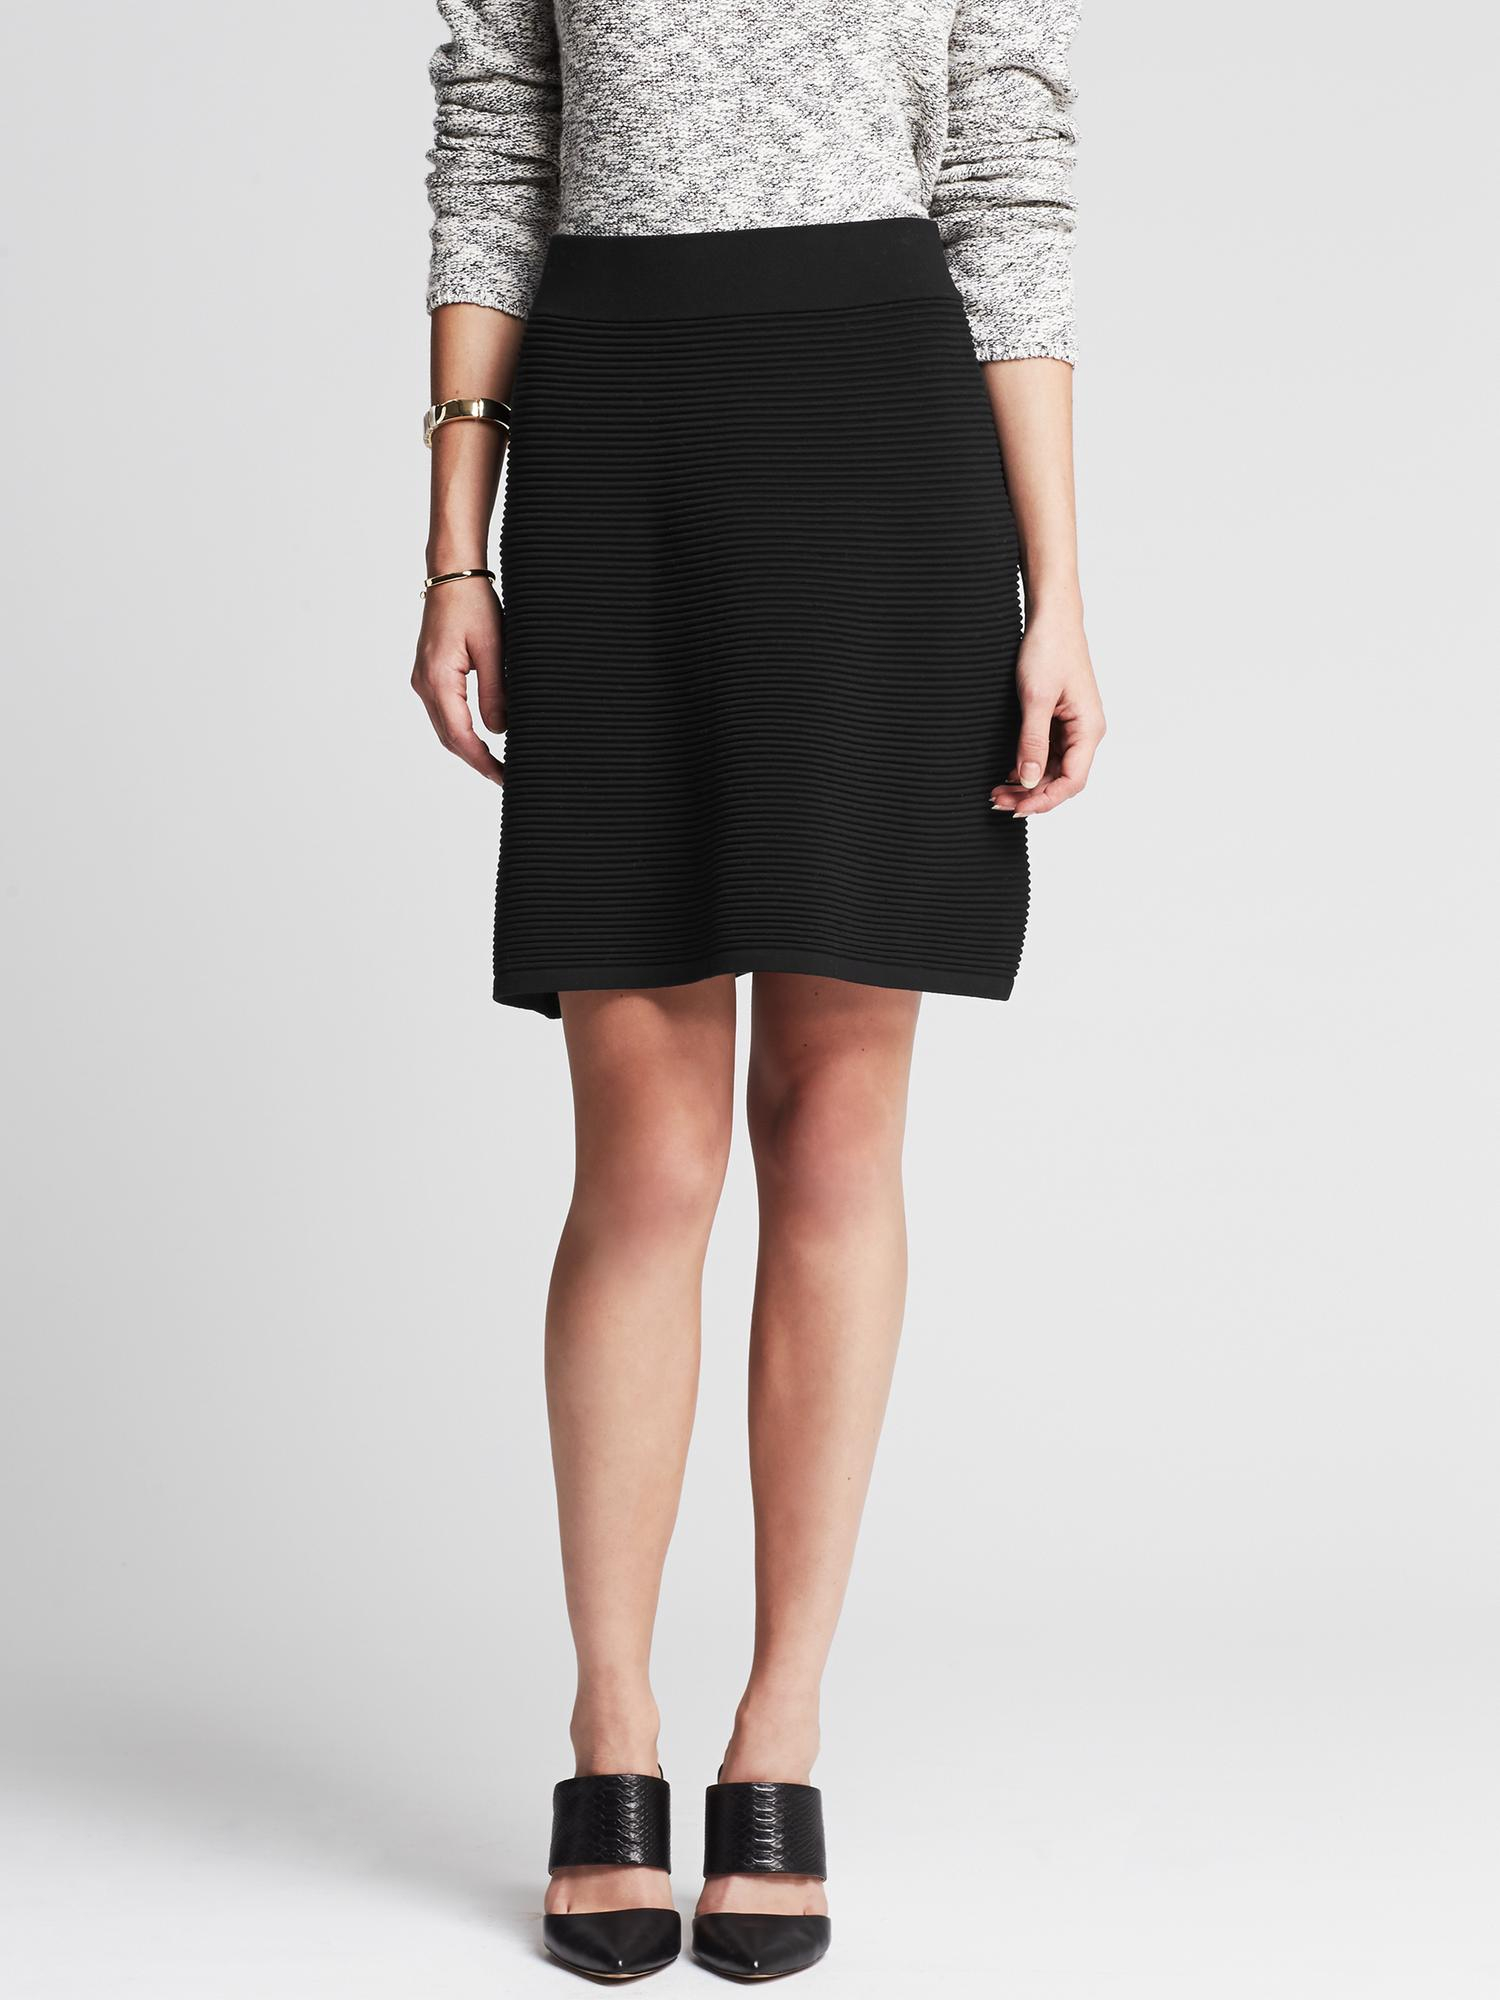 Black Sweater Skirt 54